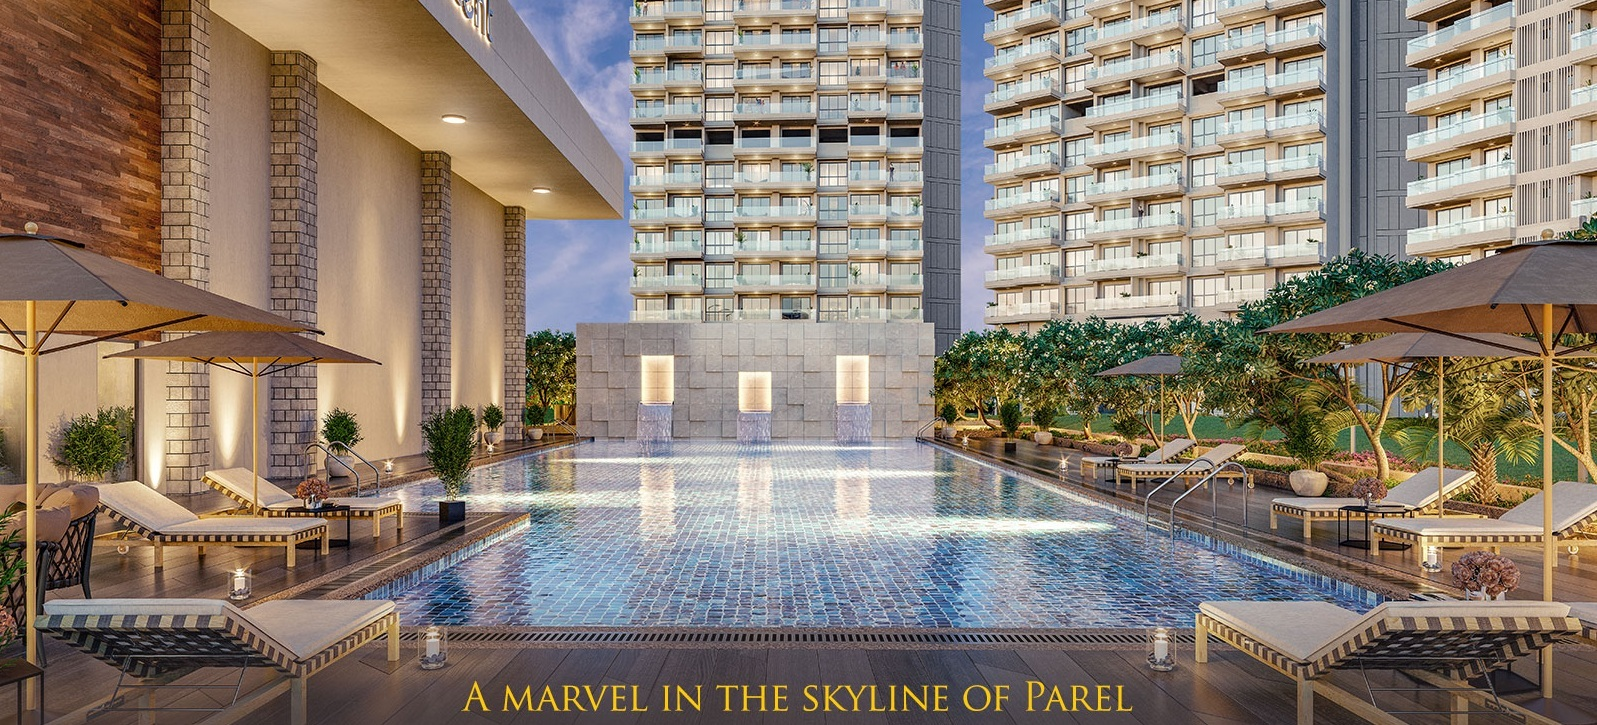 l&t crescent bay t3 project amenities features1